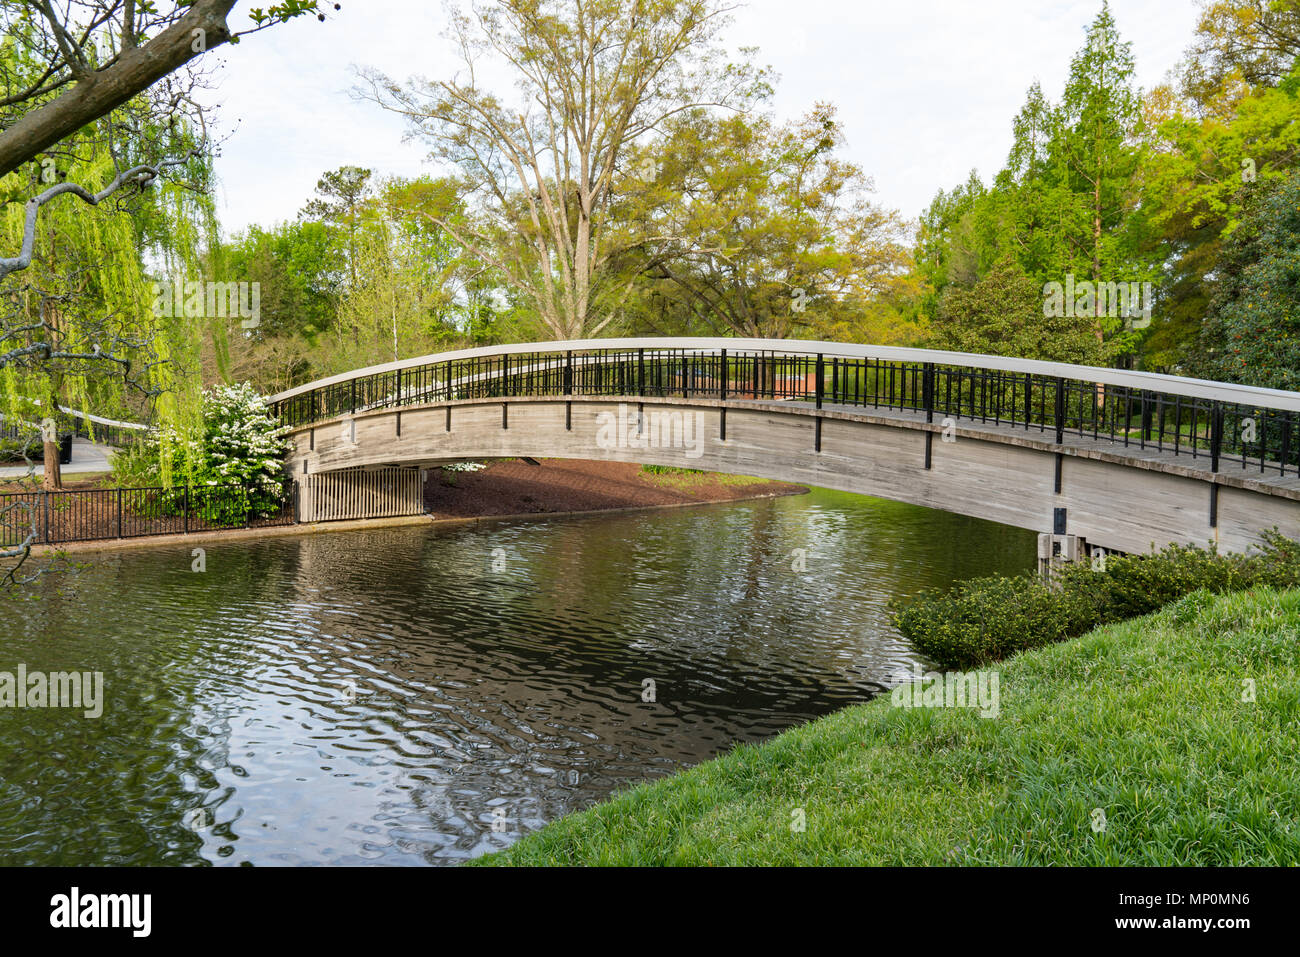 Bridge Over Lake in Pullen Park in Raleigh, North Carolina - Stock Image